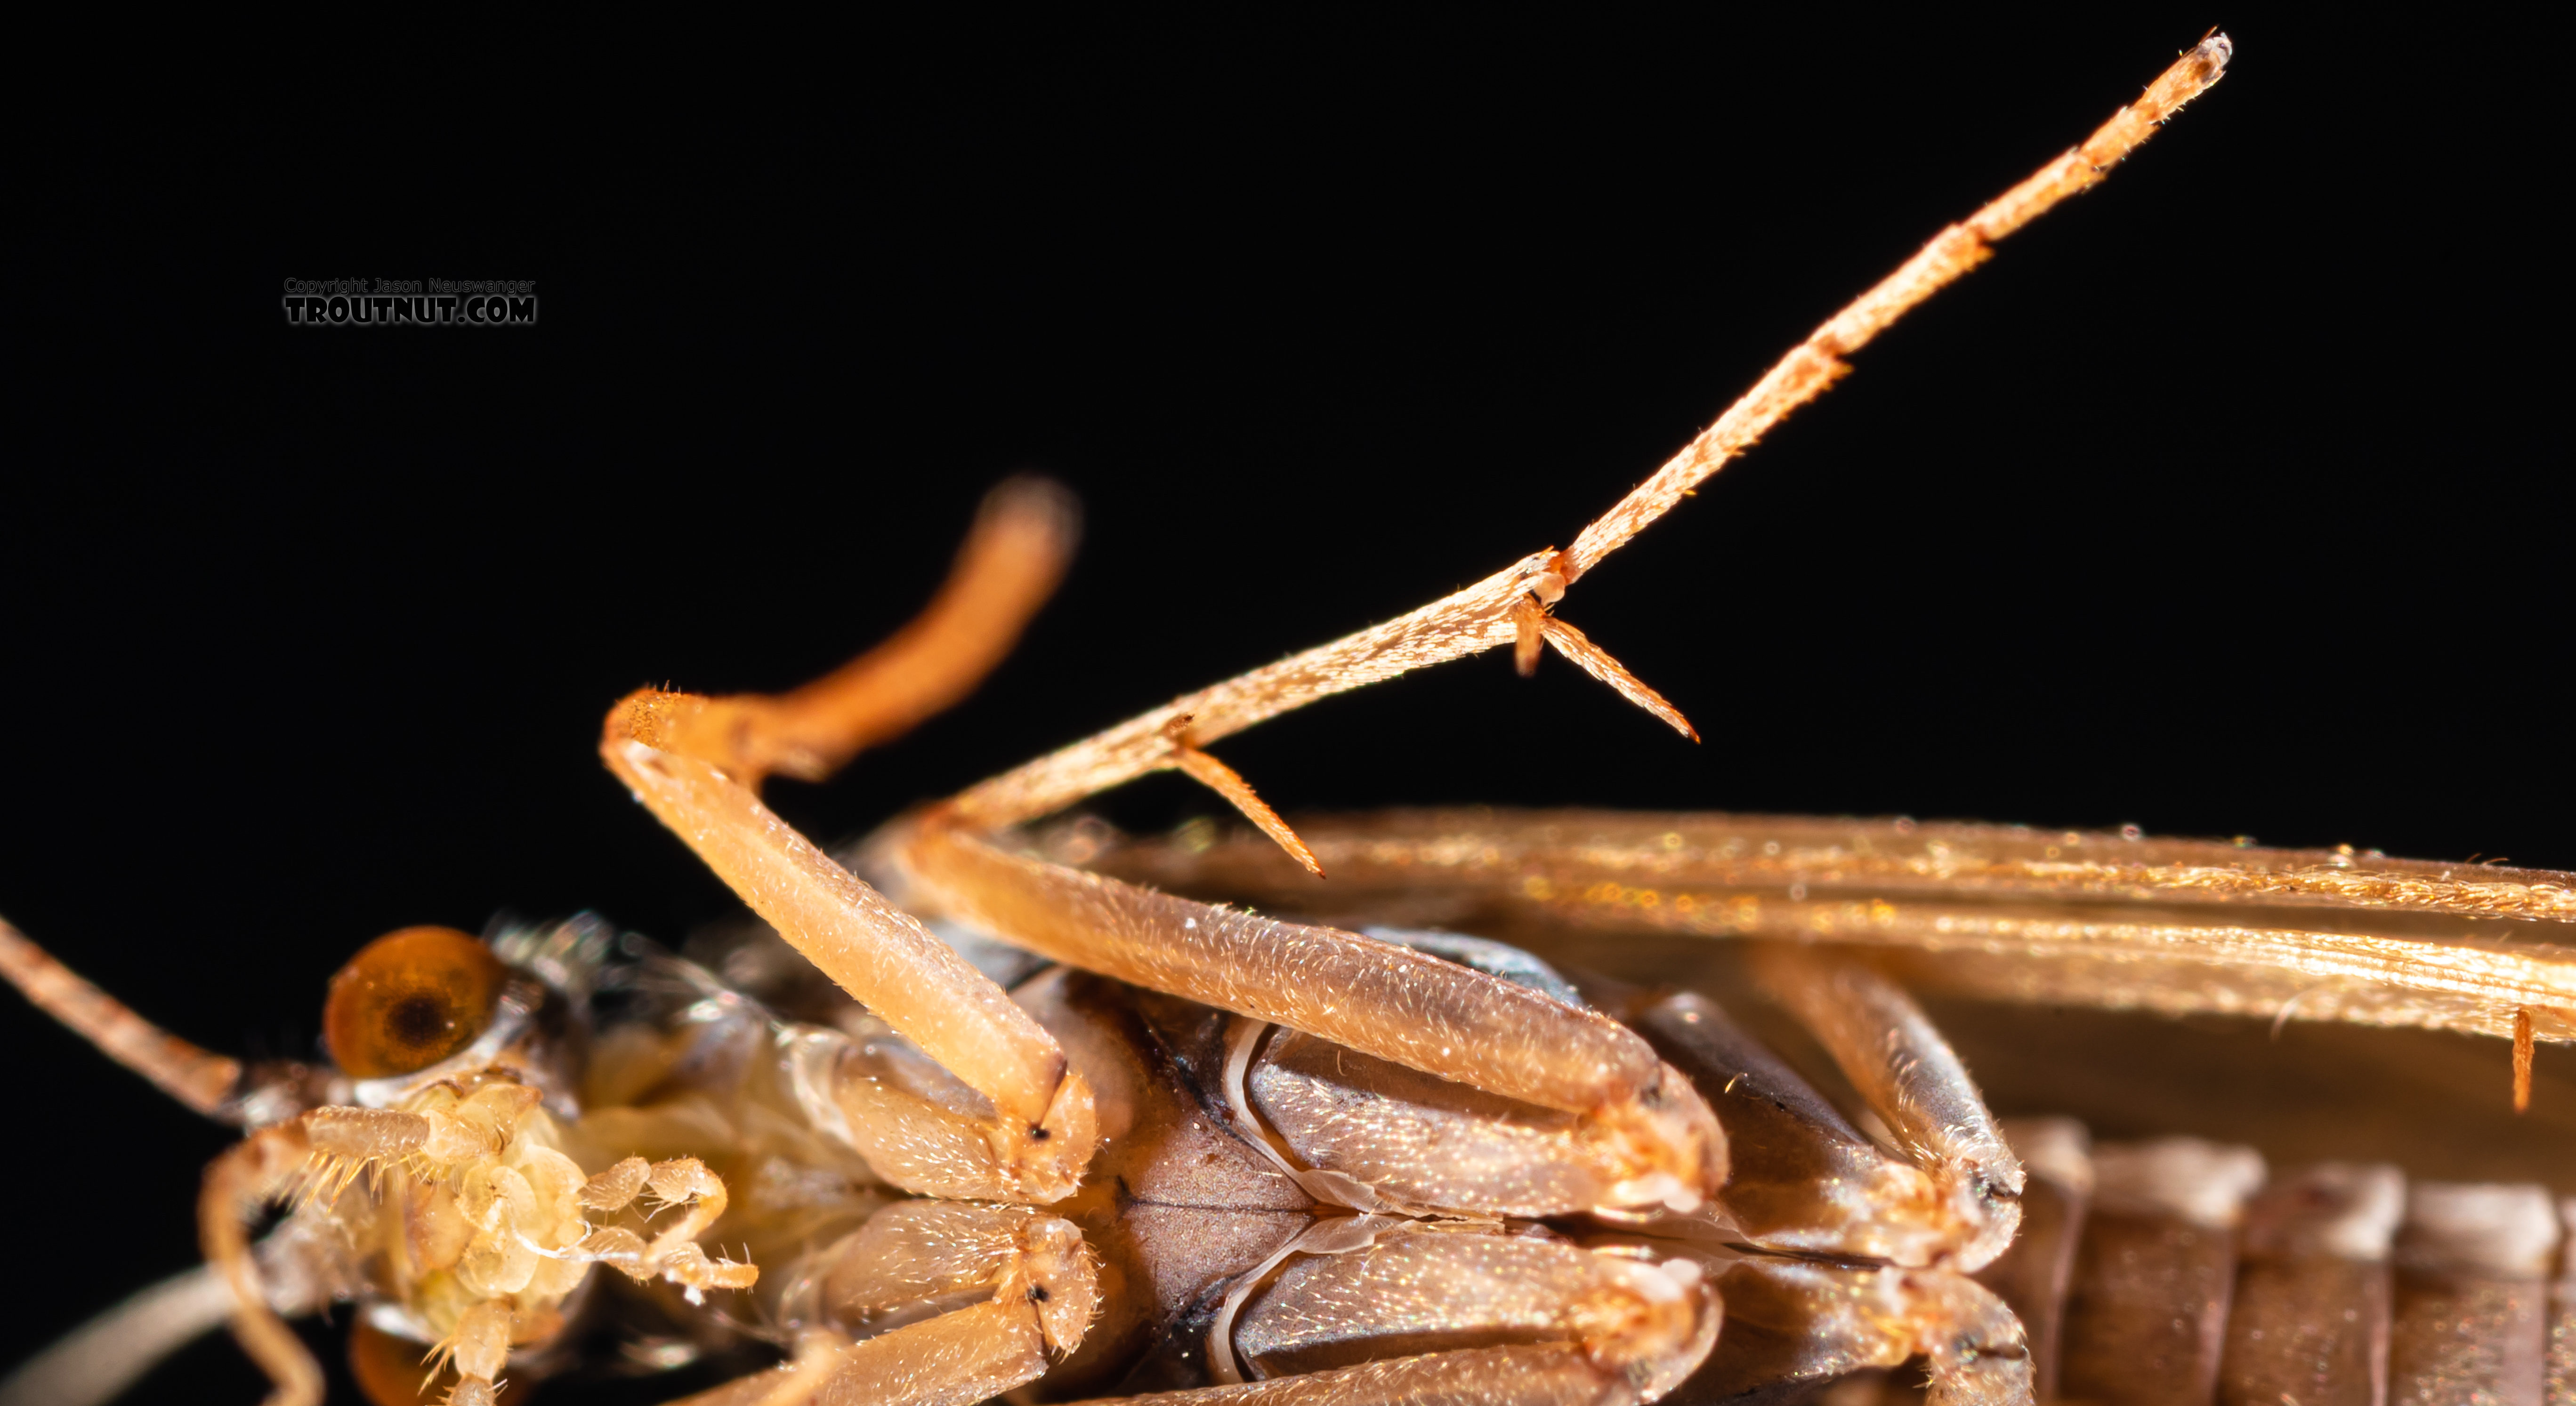 Trichoptera (Caddisflies) Caddisfly Adult from the Ruby River in Montana